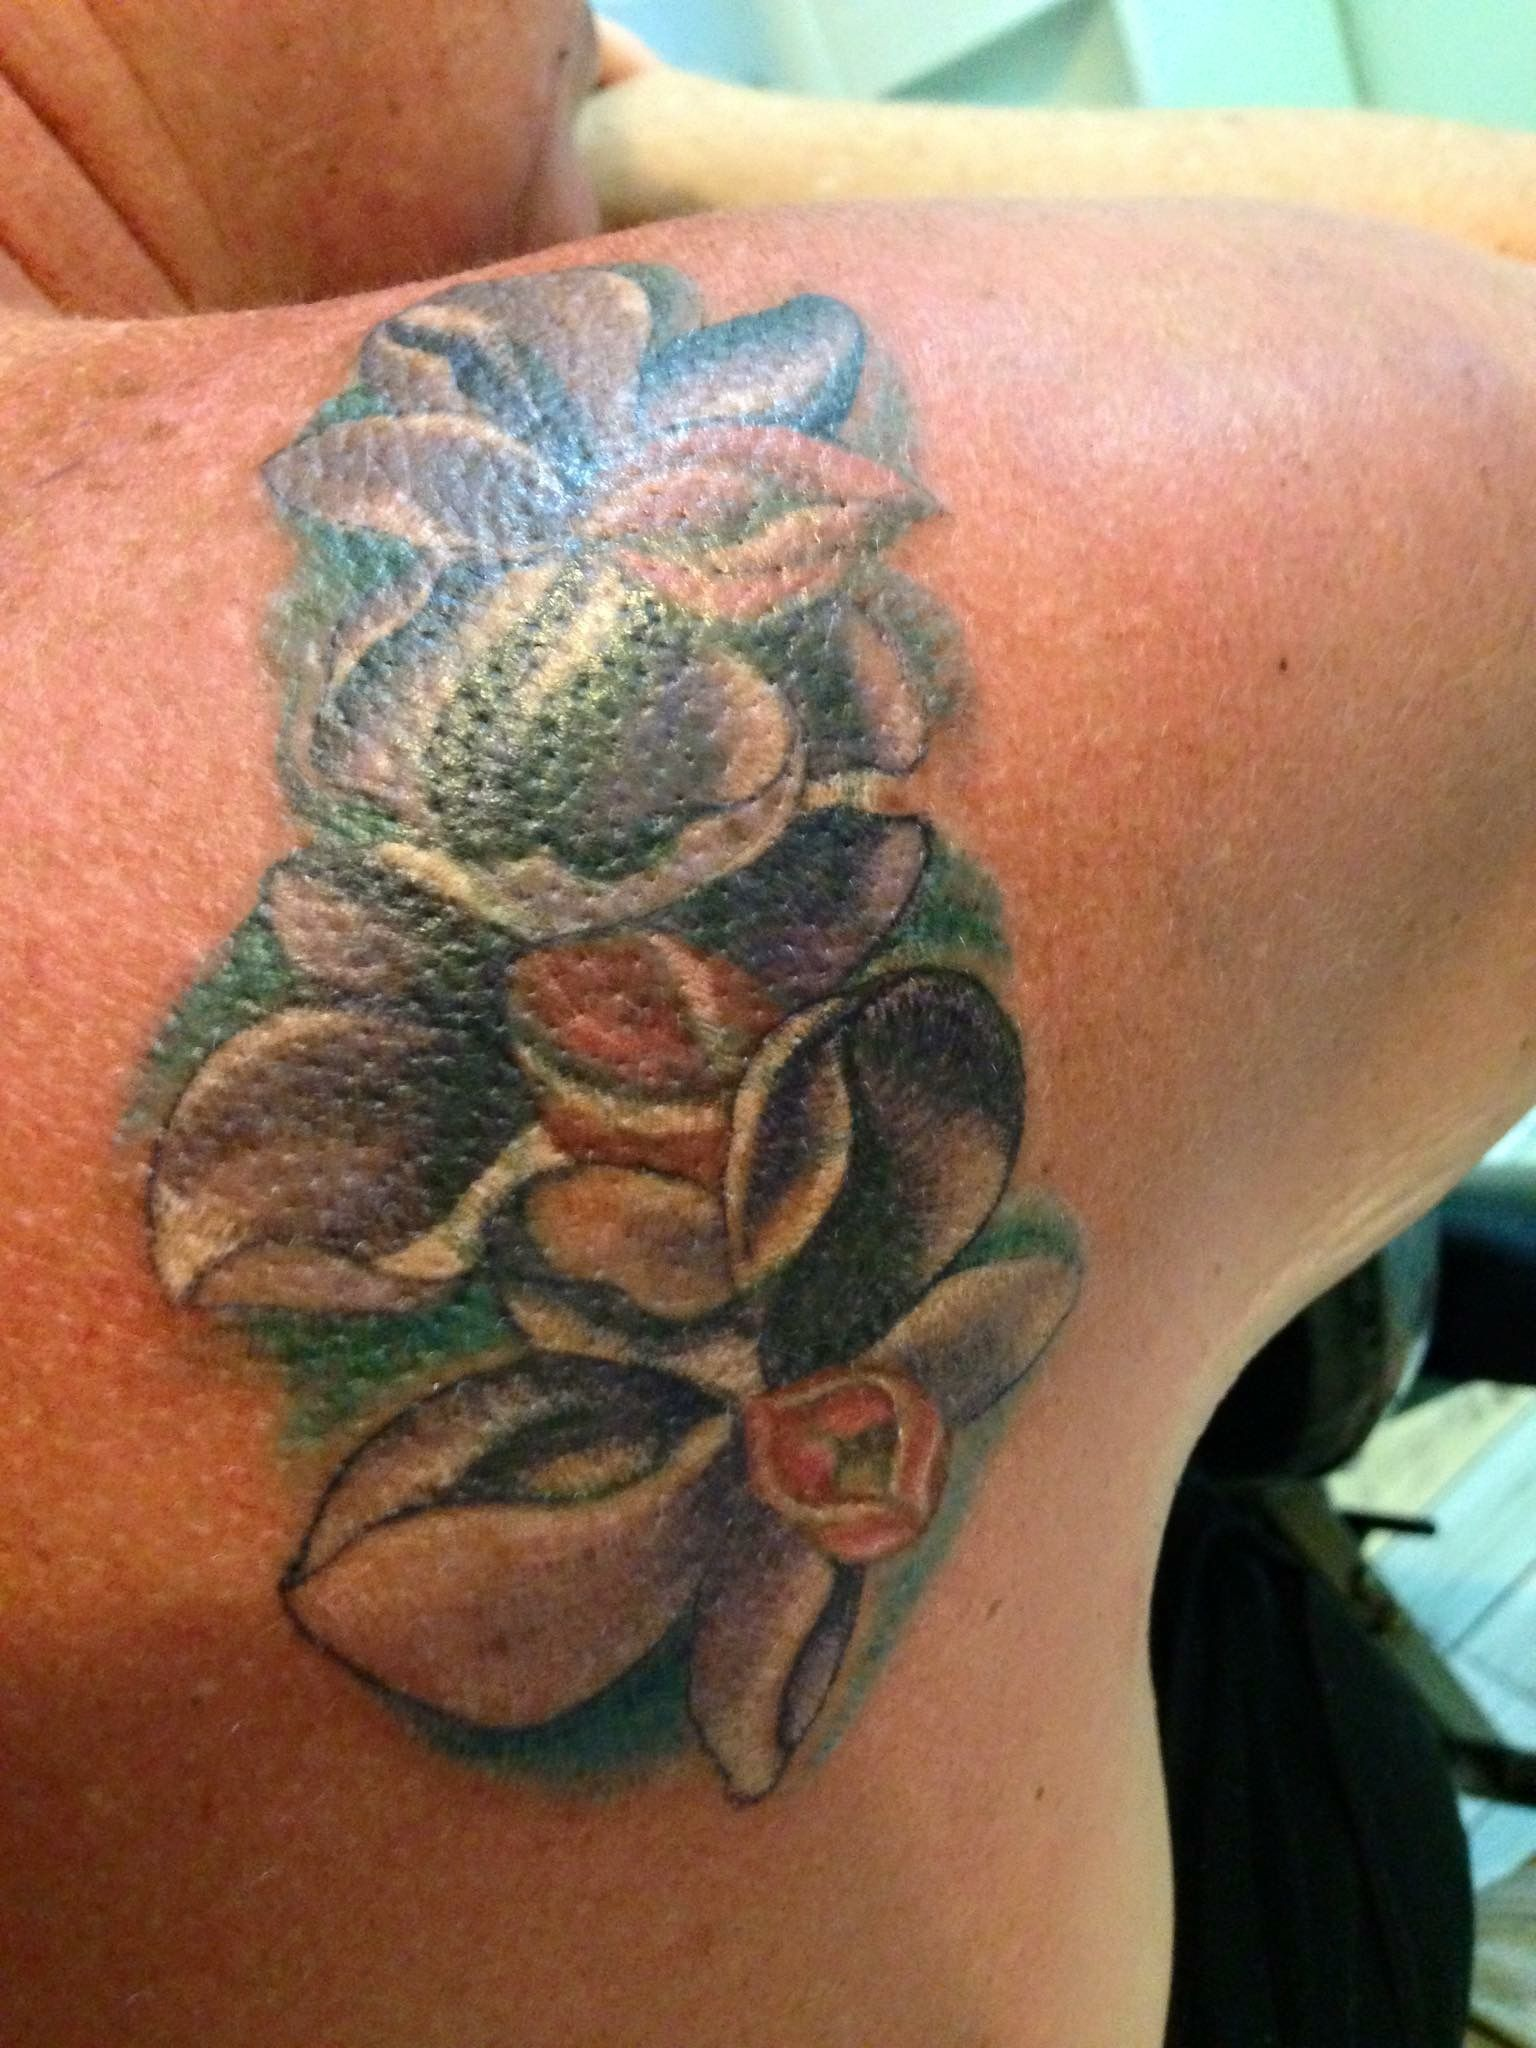 After Tattoo By Bamboo Method By Keng Bamboo Tattoos By Keng Of